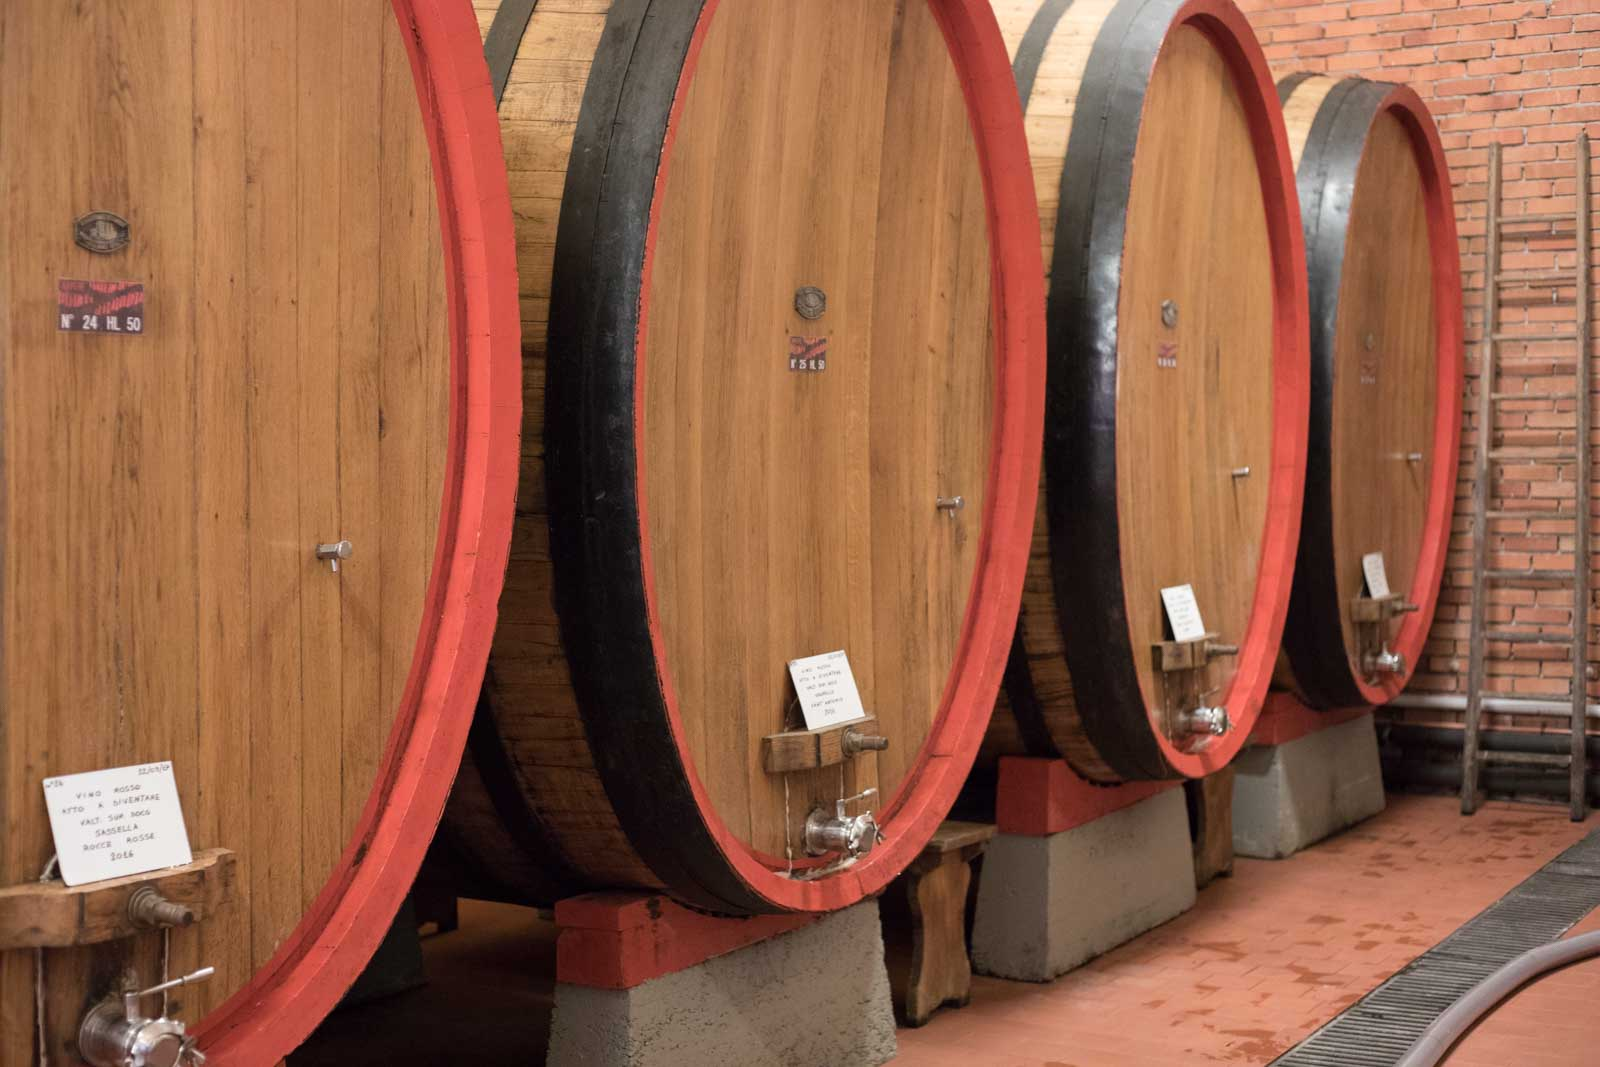 Chestnut casks at Ar.Pe.Pe., Valtellina Superiore, Italy. ©Kevin Day/Opening a Bottle